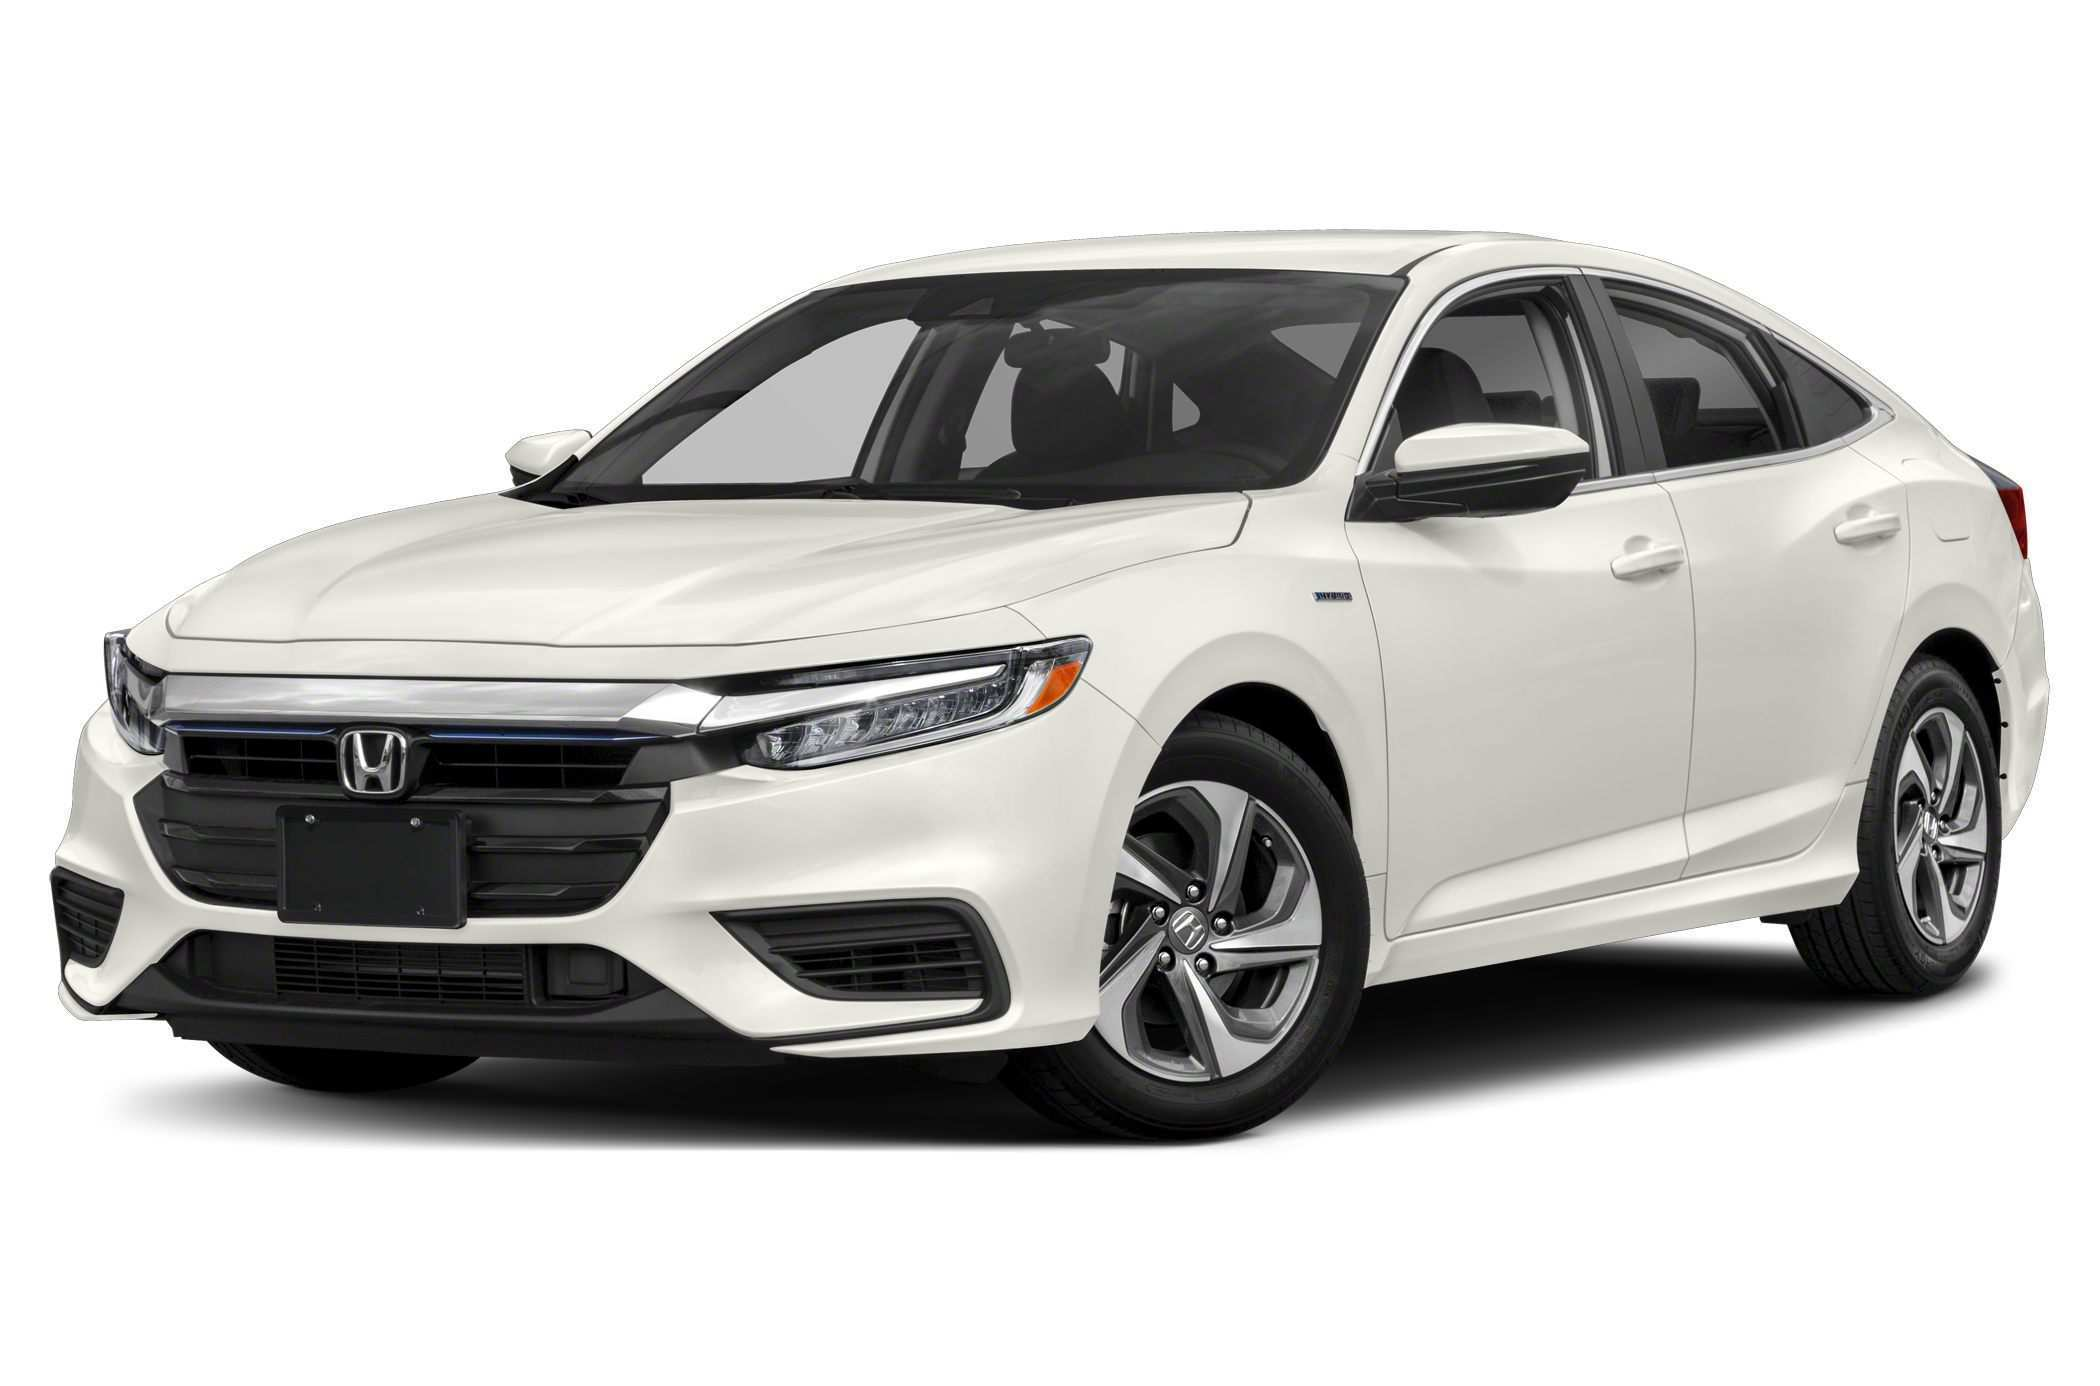 55 The Best 2019 Honda Insight Picture